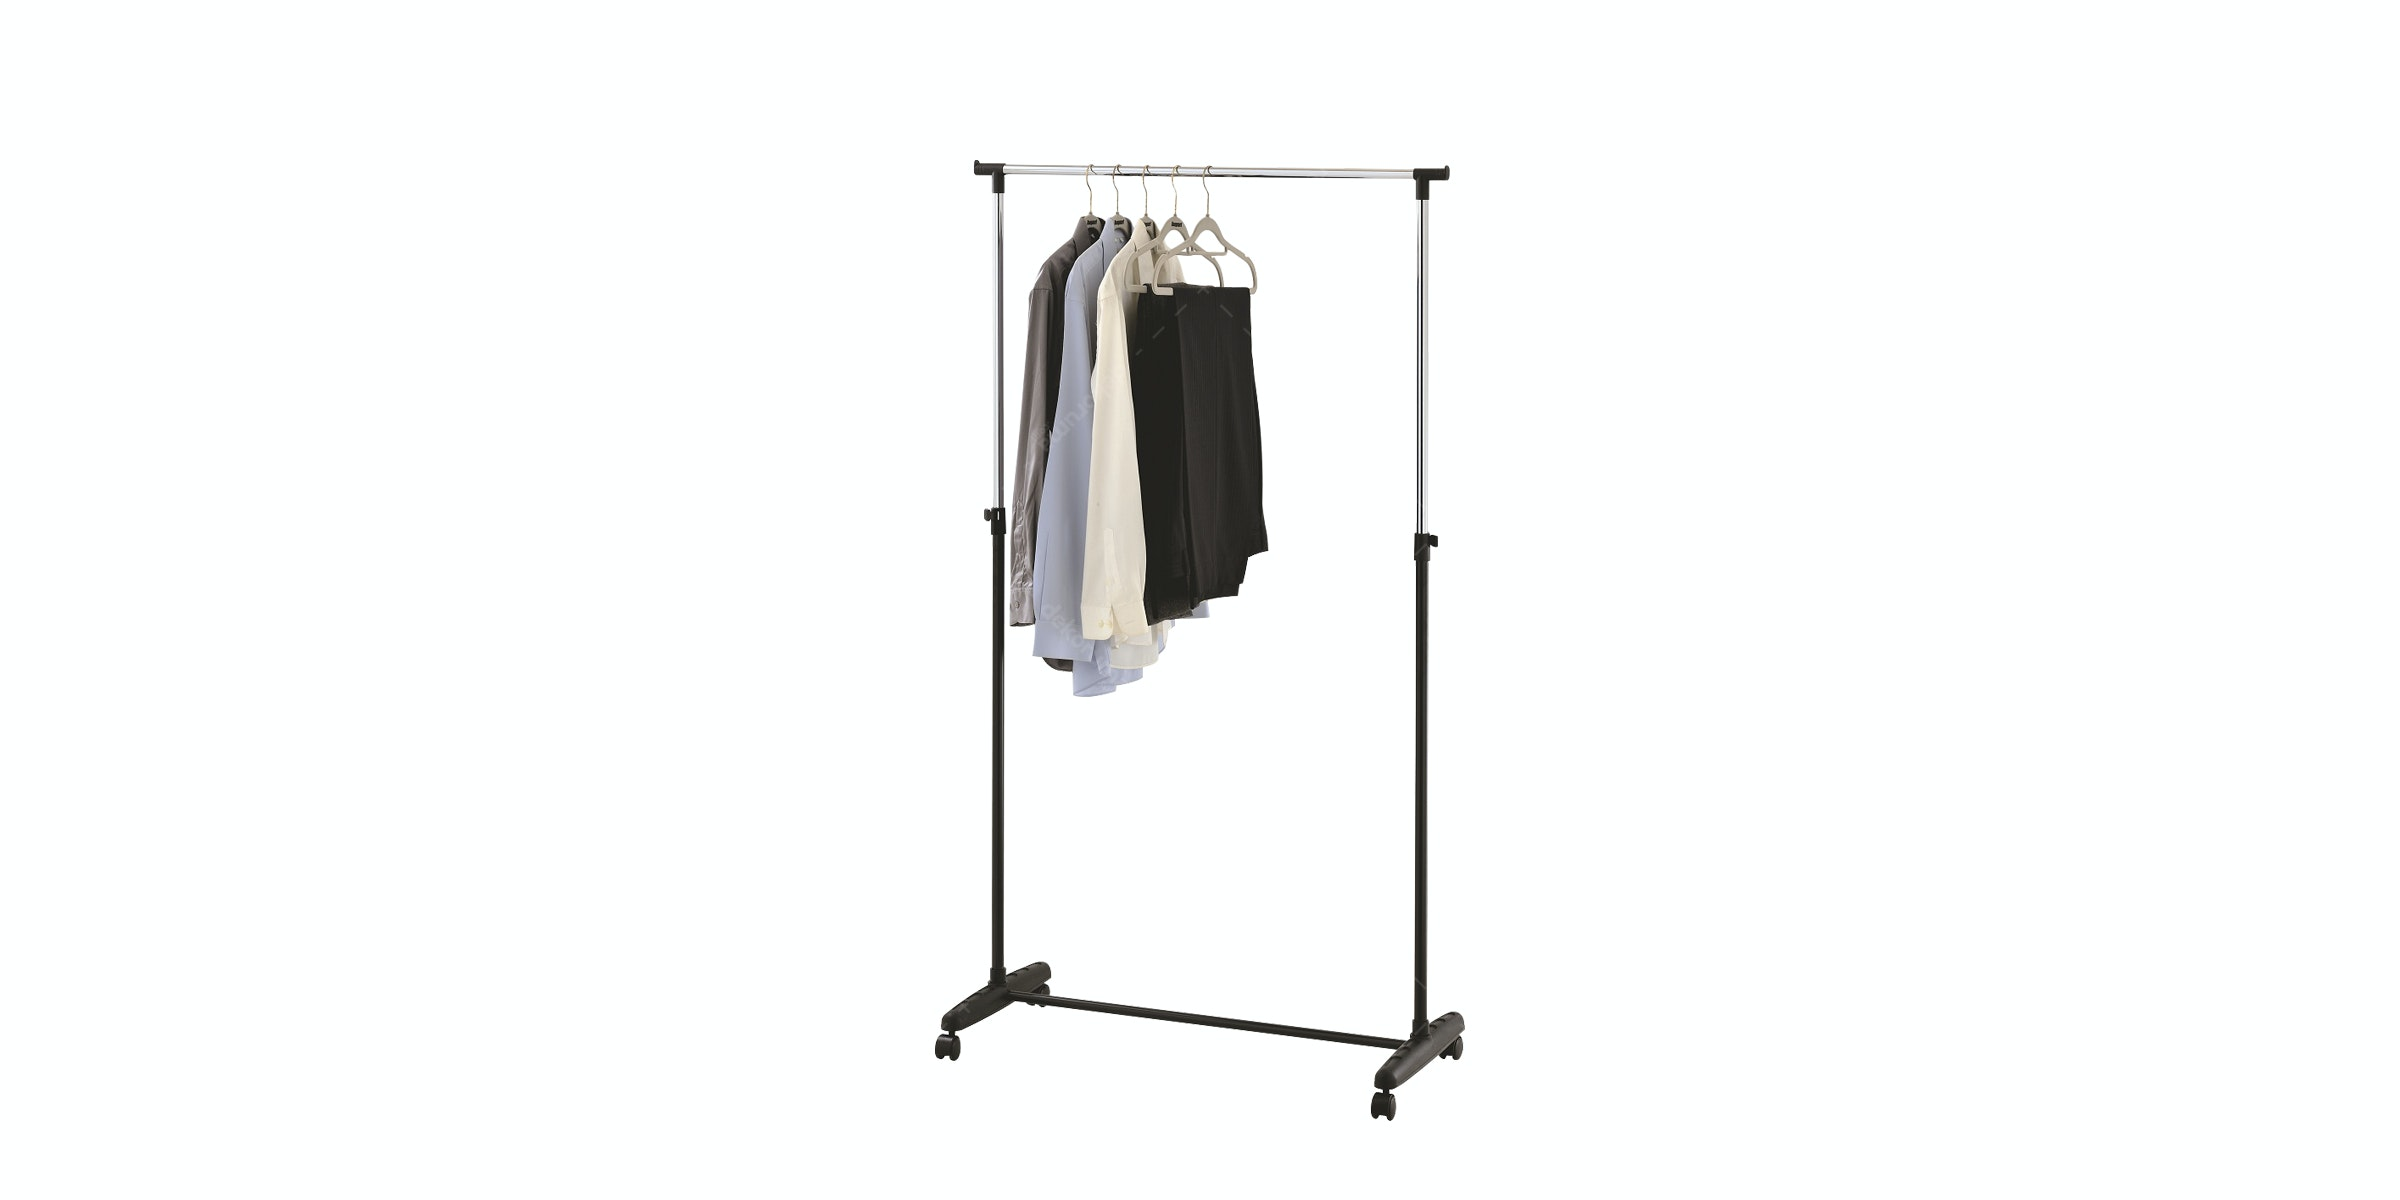 JYSK Clothes Rail Jerslev 89X38X167Cm Metal Black